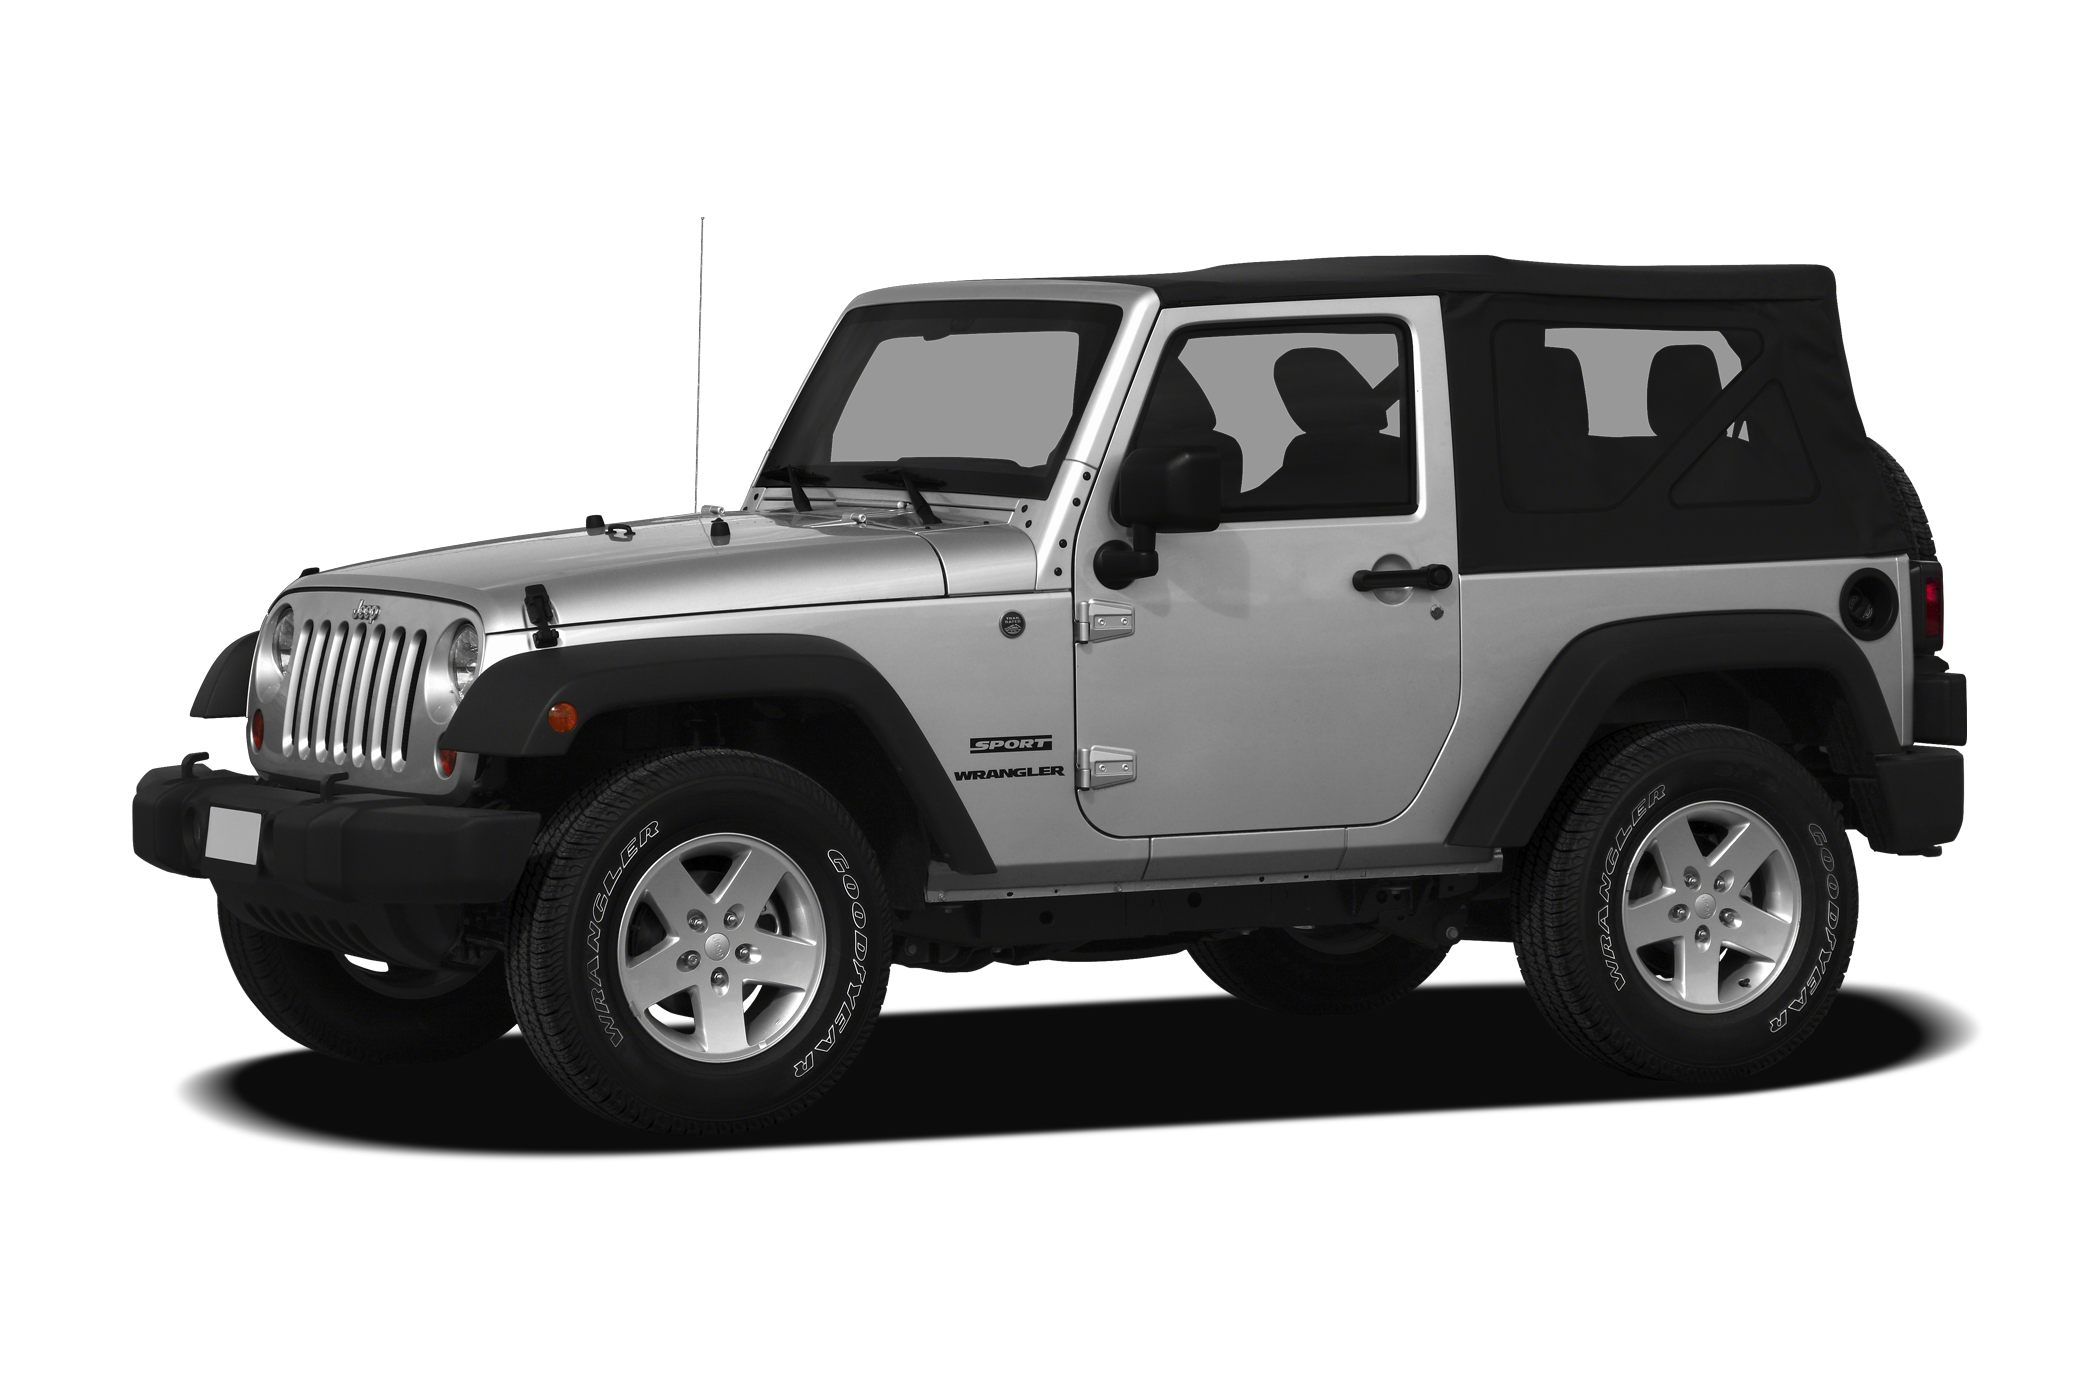 2011 Jeep Wrangler Rubicon SUV for sale in Summersville for $28,999 with 32,680 miles.